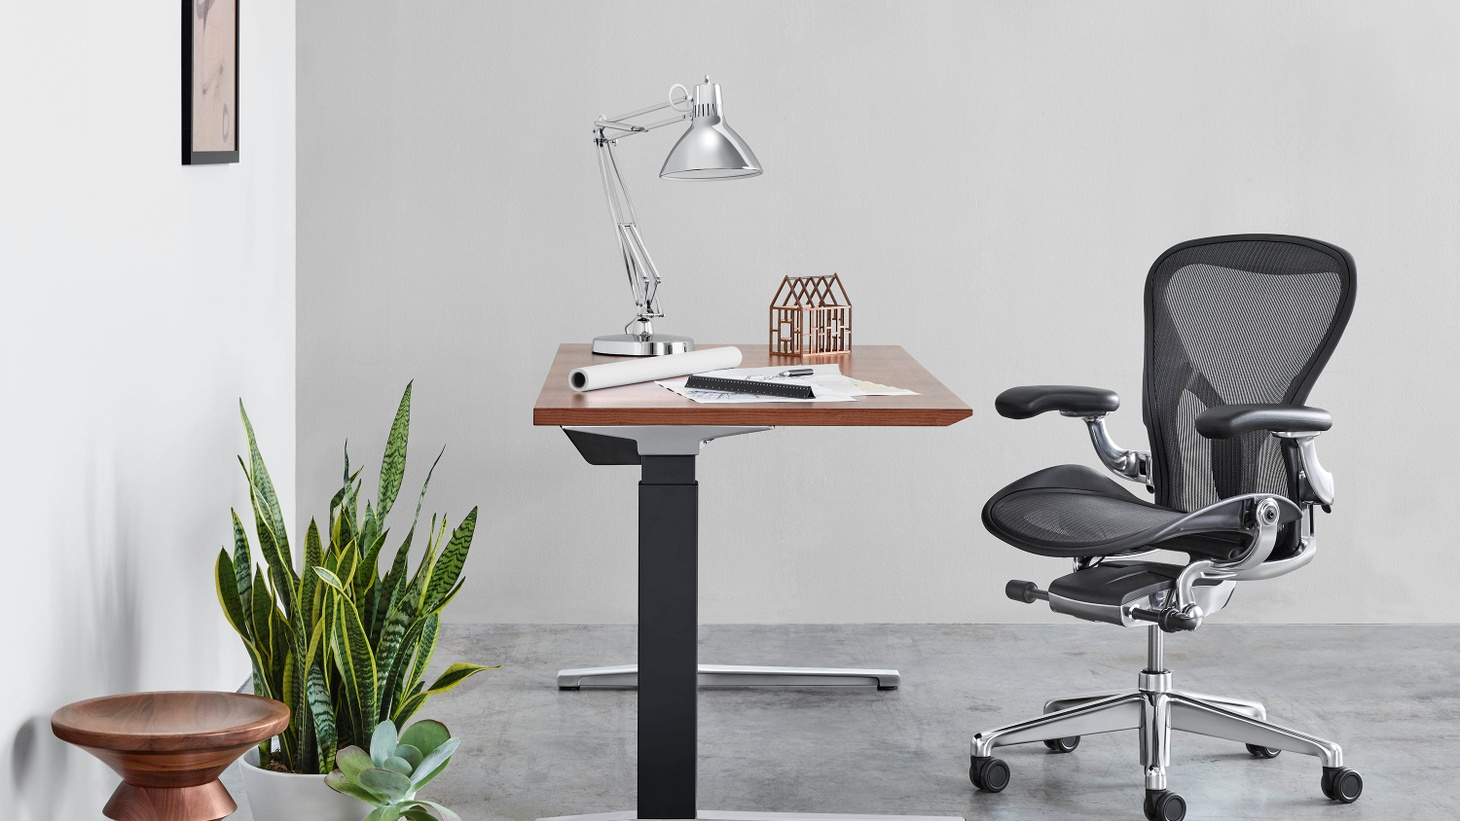 The newly designed Aeron chair Photo courtesy Herman Miller   Design firm Herman Miller first launched its popular Aeron chair in 1994. Designers Bill Stumpf and Don Chadwick replaced the foam and fabric of traditional office chairs with high-tech materials and cutting-edge design. Over seven million Aeron chairs have been sold in 134 countries.…